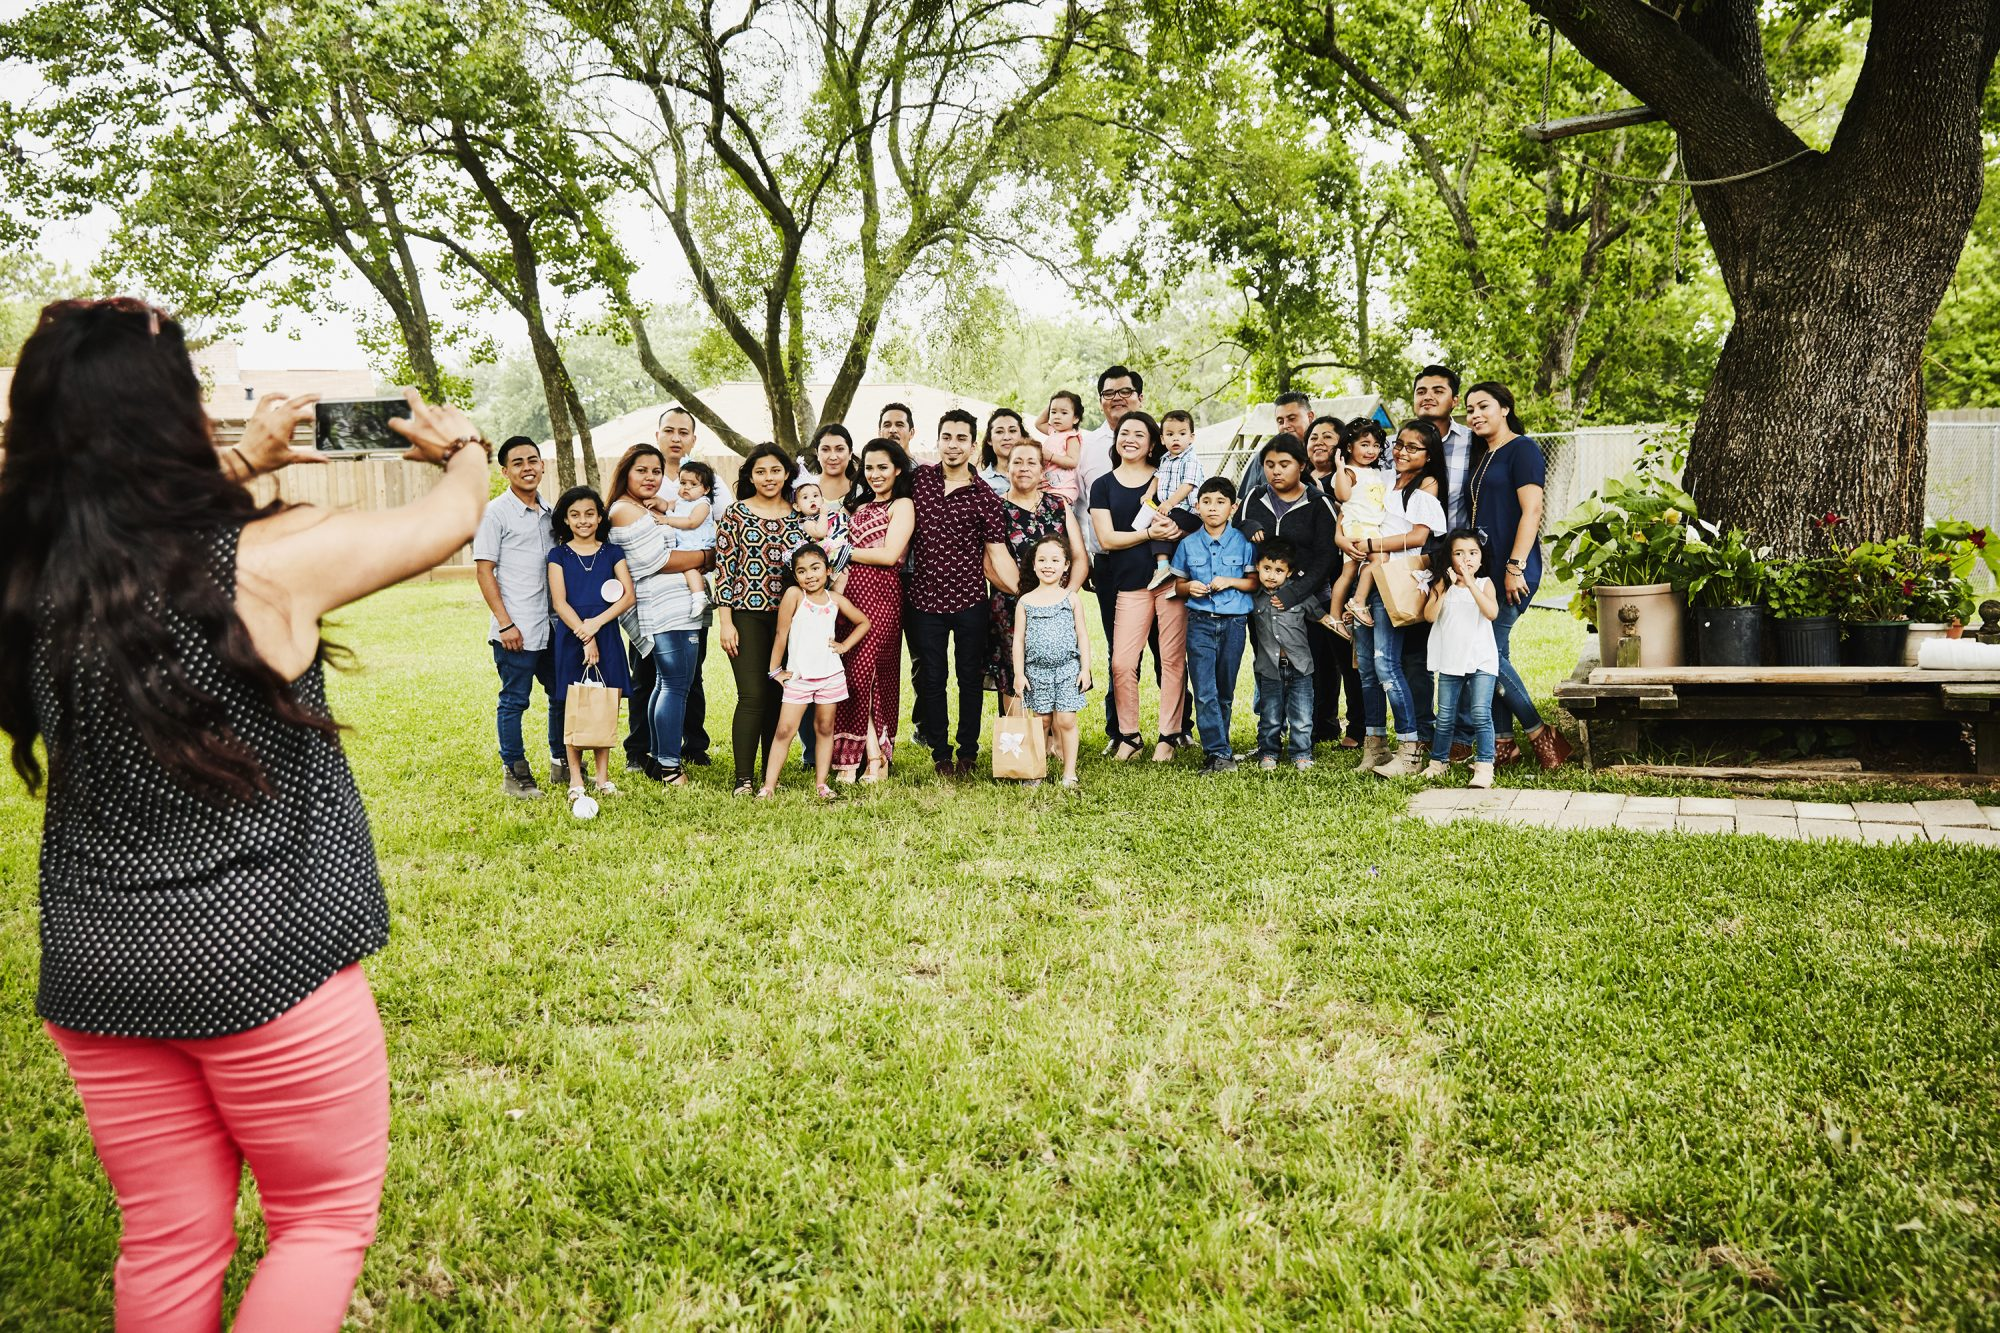 """Travelocity Survey Says Visiting Family Is the Top Travel """"Trend"""" for Summer 2021: family reunion picture"""